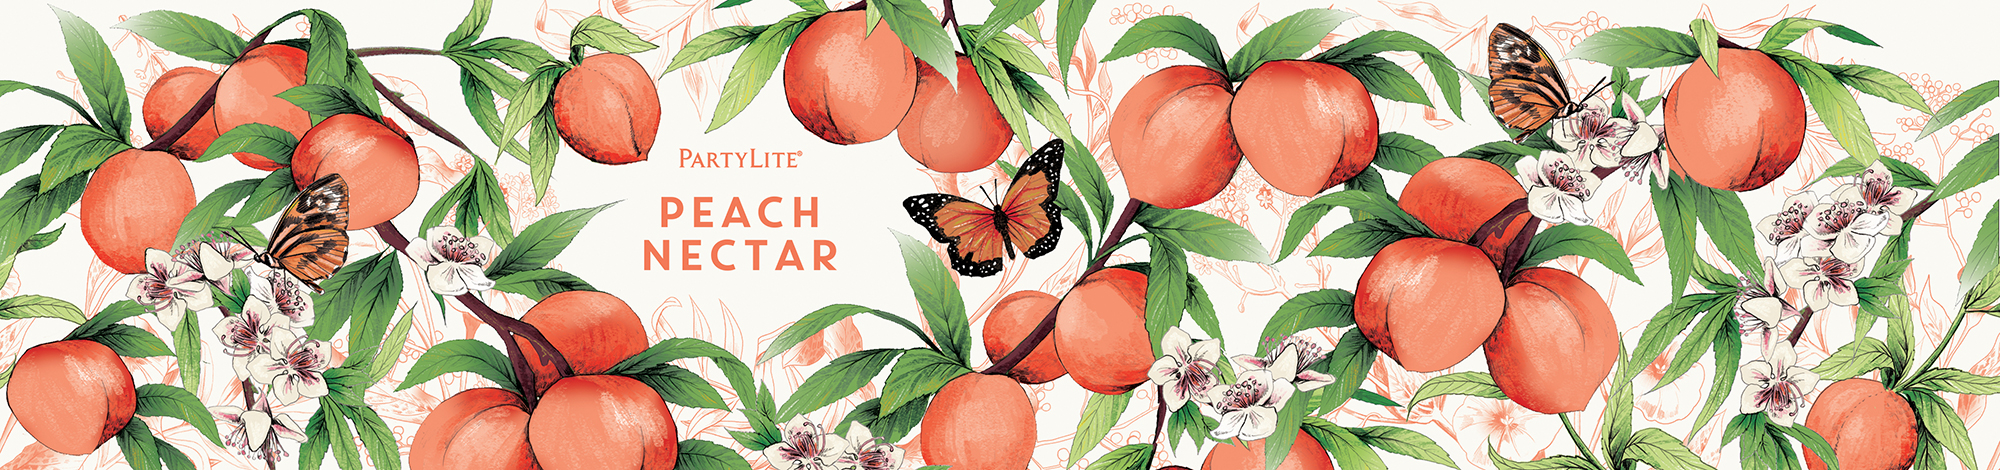 fig. 15. Peach Nectar candle wrap pattern illustration